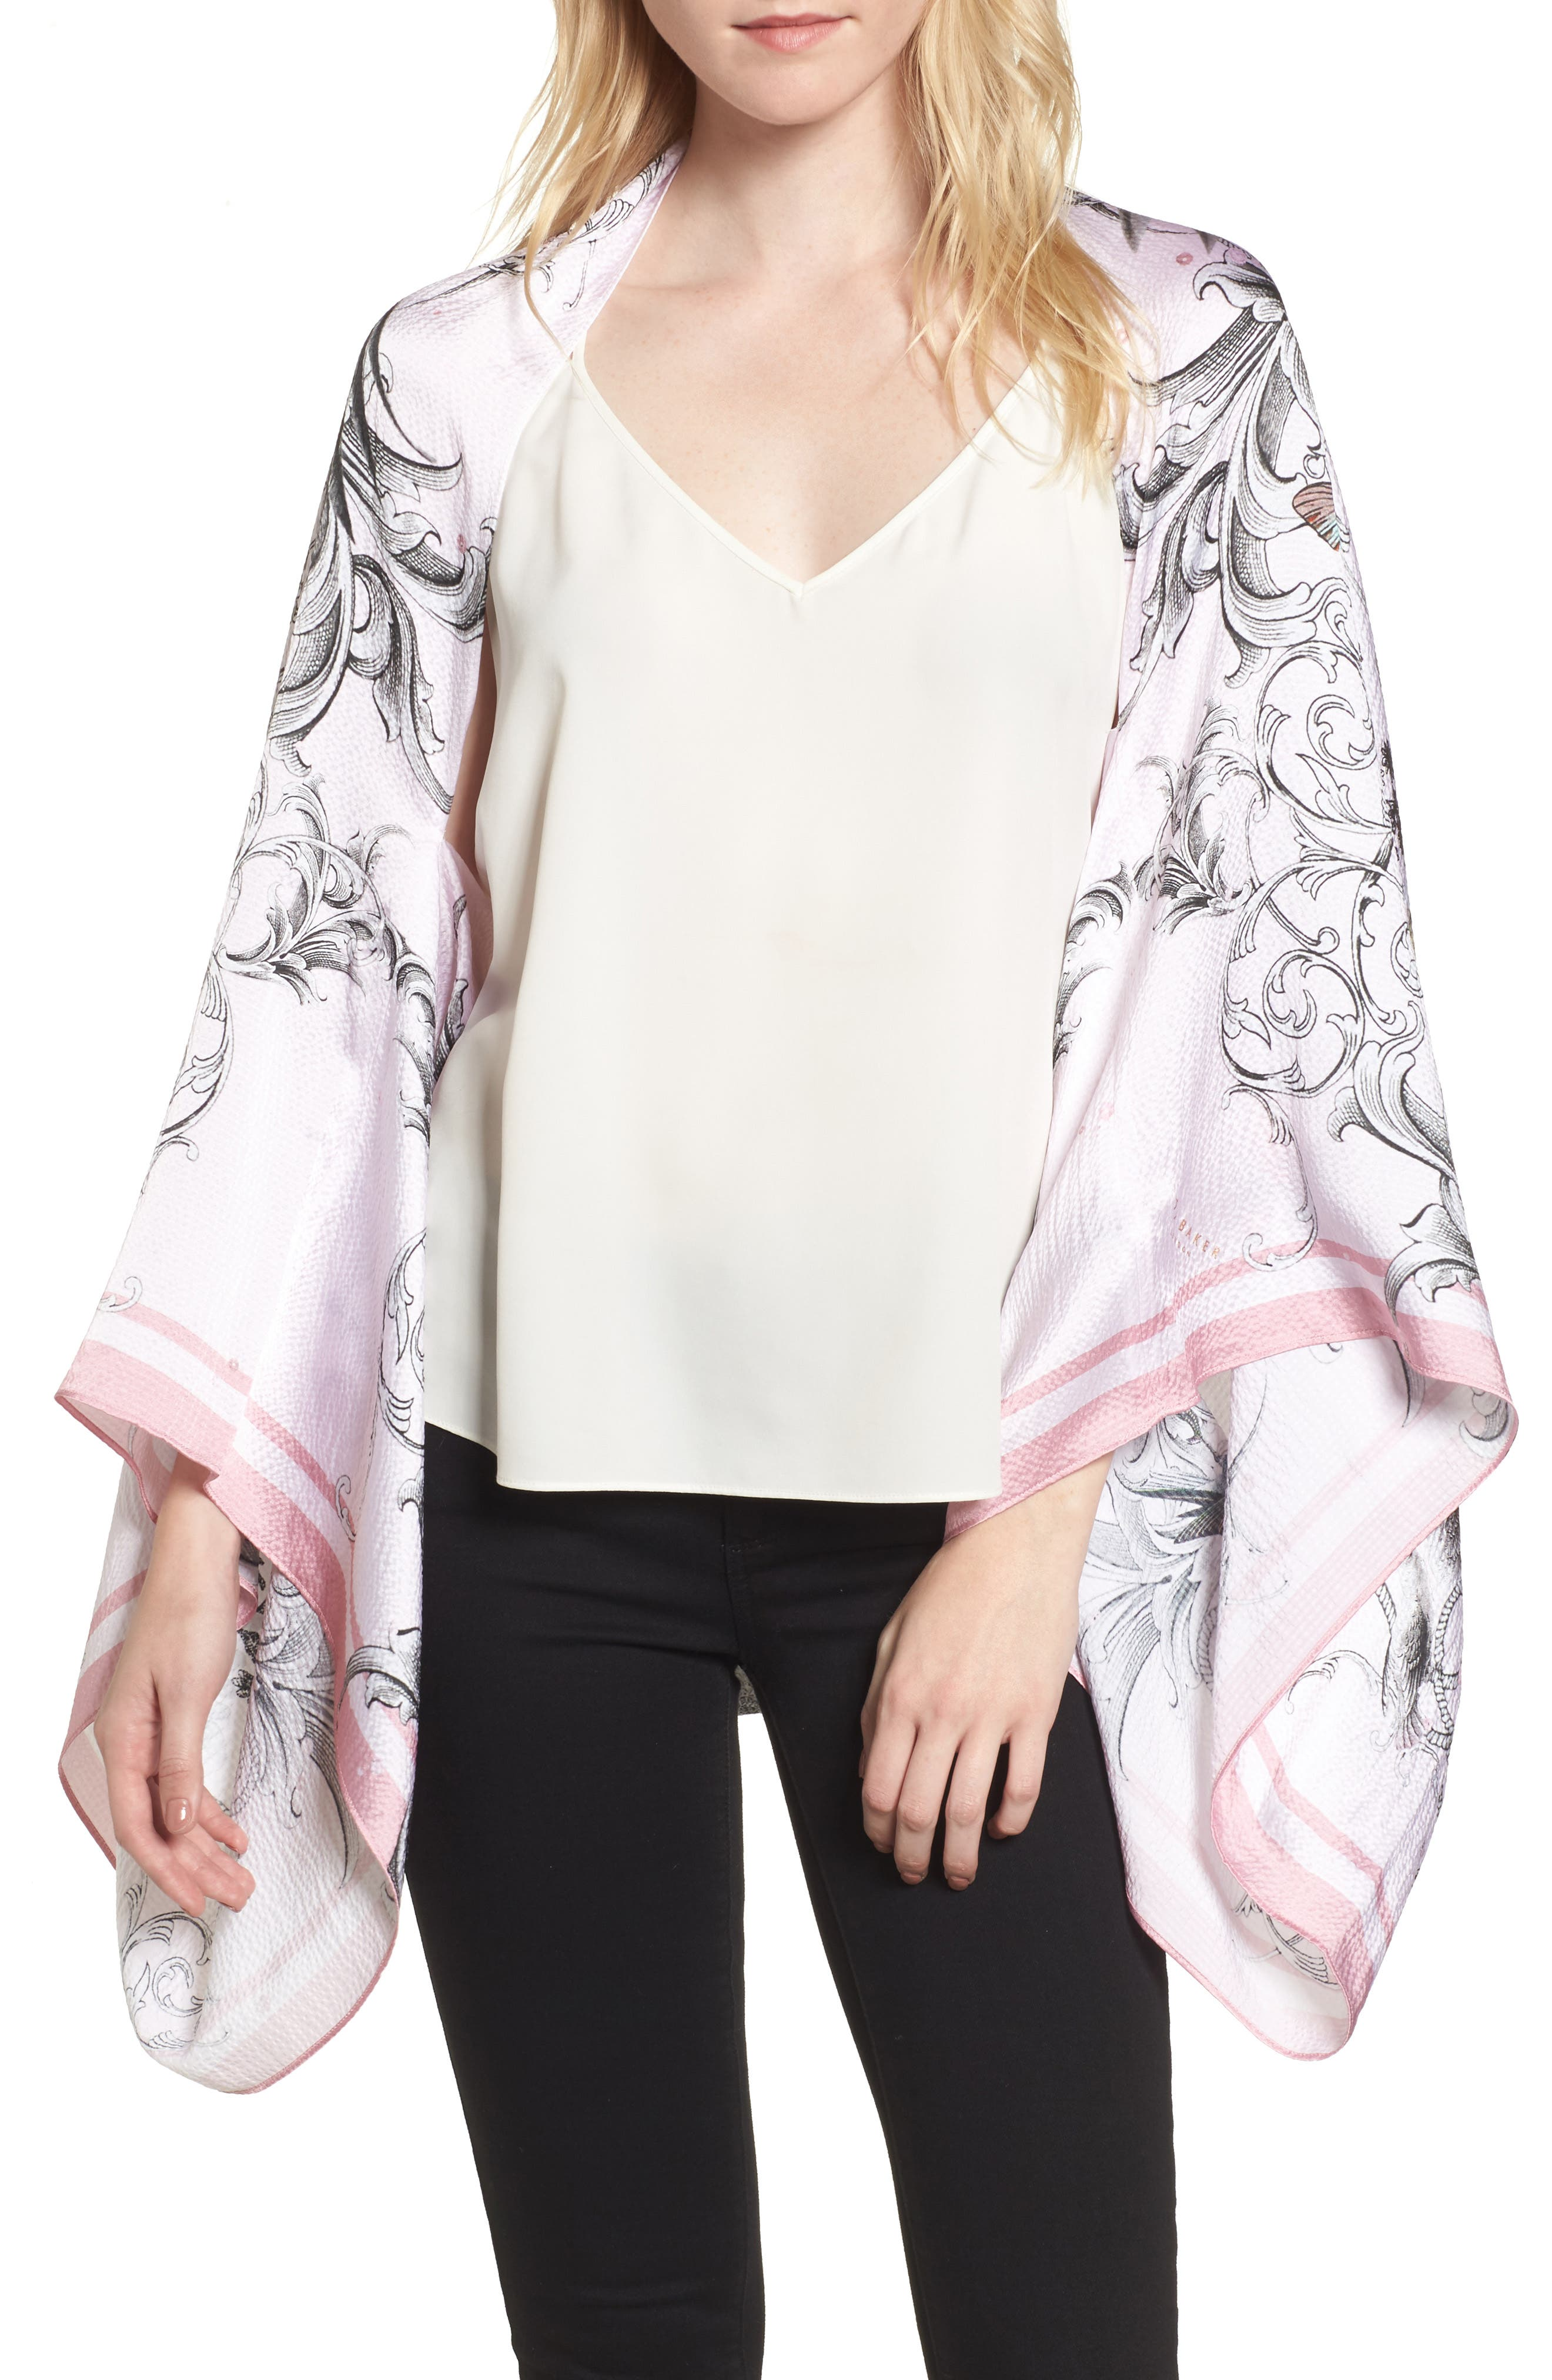 Enchanted Dream Silk Cape Scarf,                         Main,                         color, 59-Pale Pink